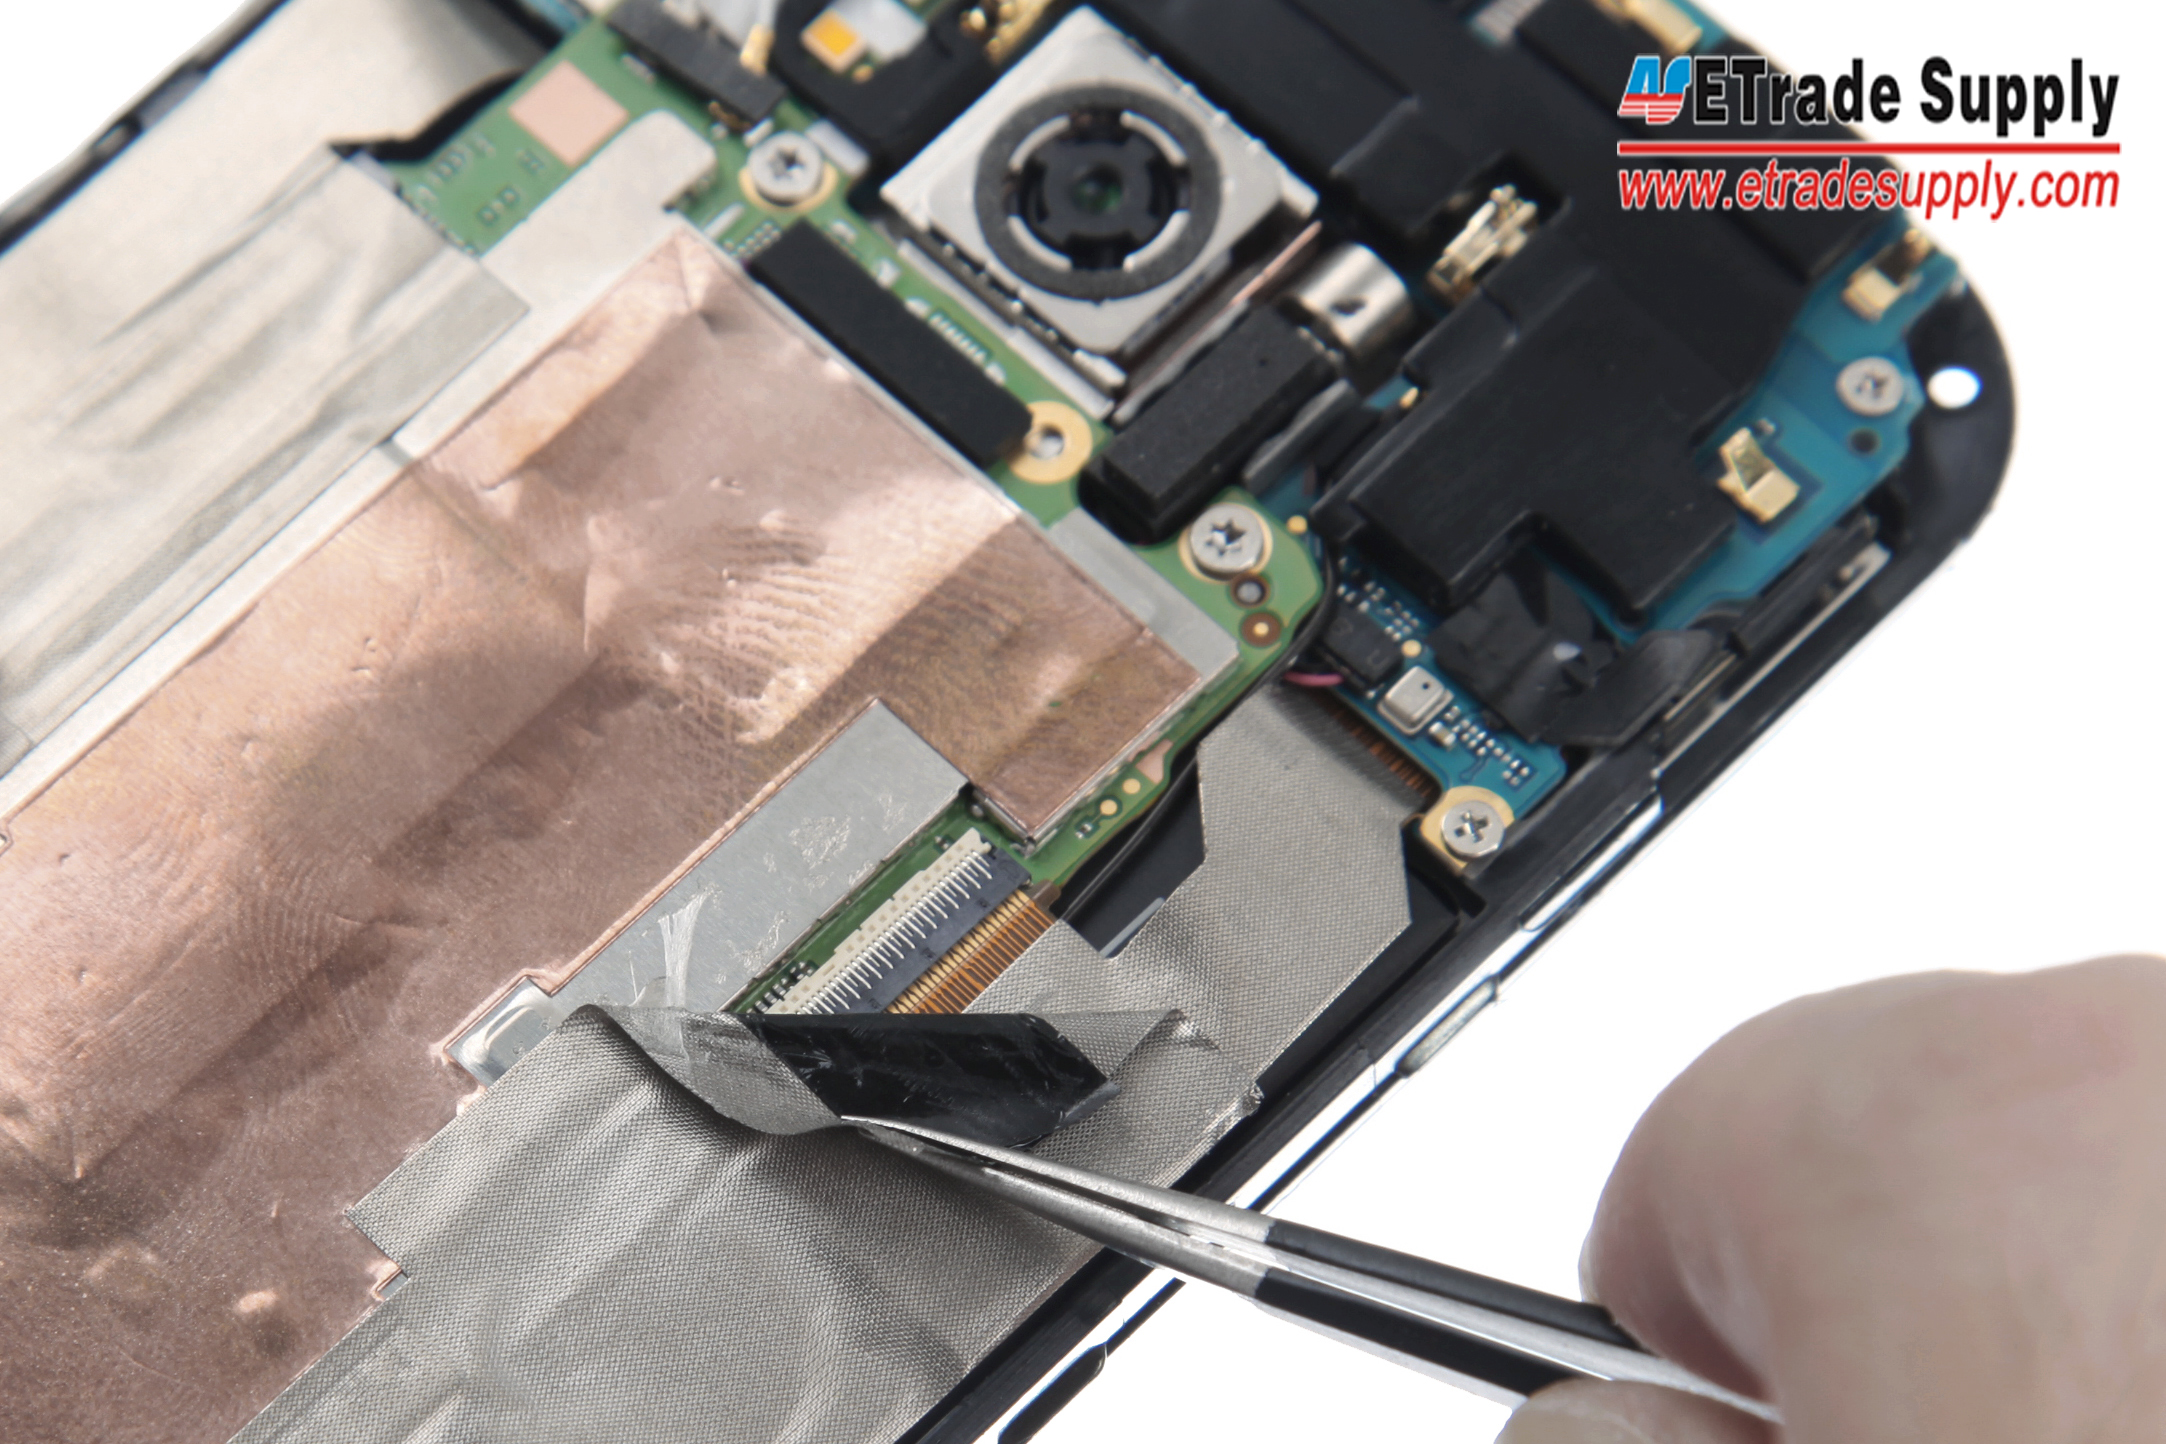 Htc One M8 Disassembly Take Apart Tear Down Tutorial Etrade Supply X Circuit Diagram Peel Off The Tapes With Tweezers